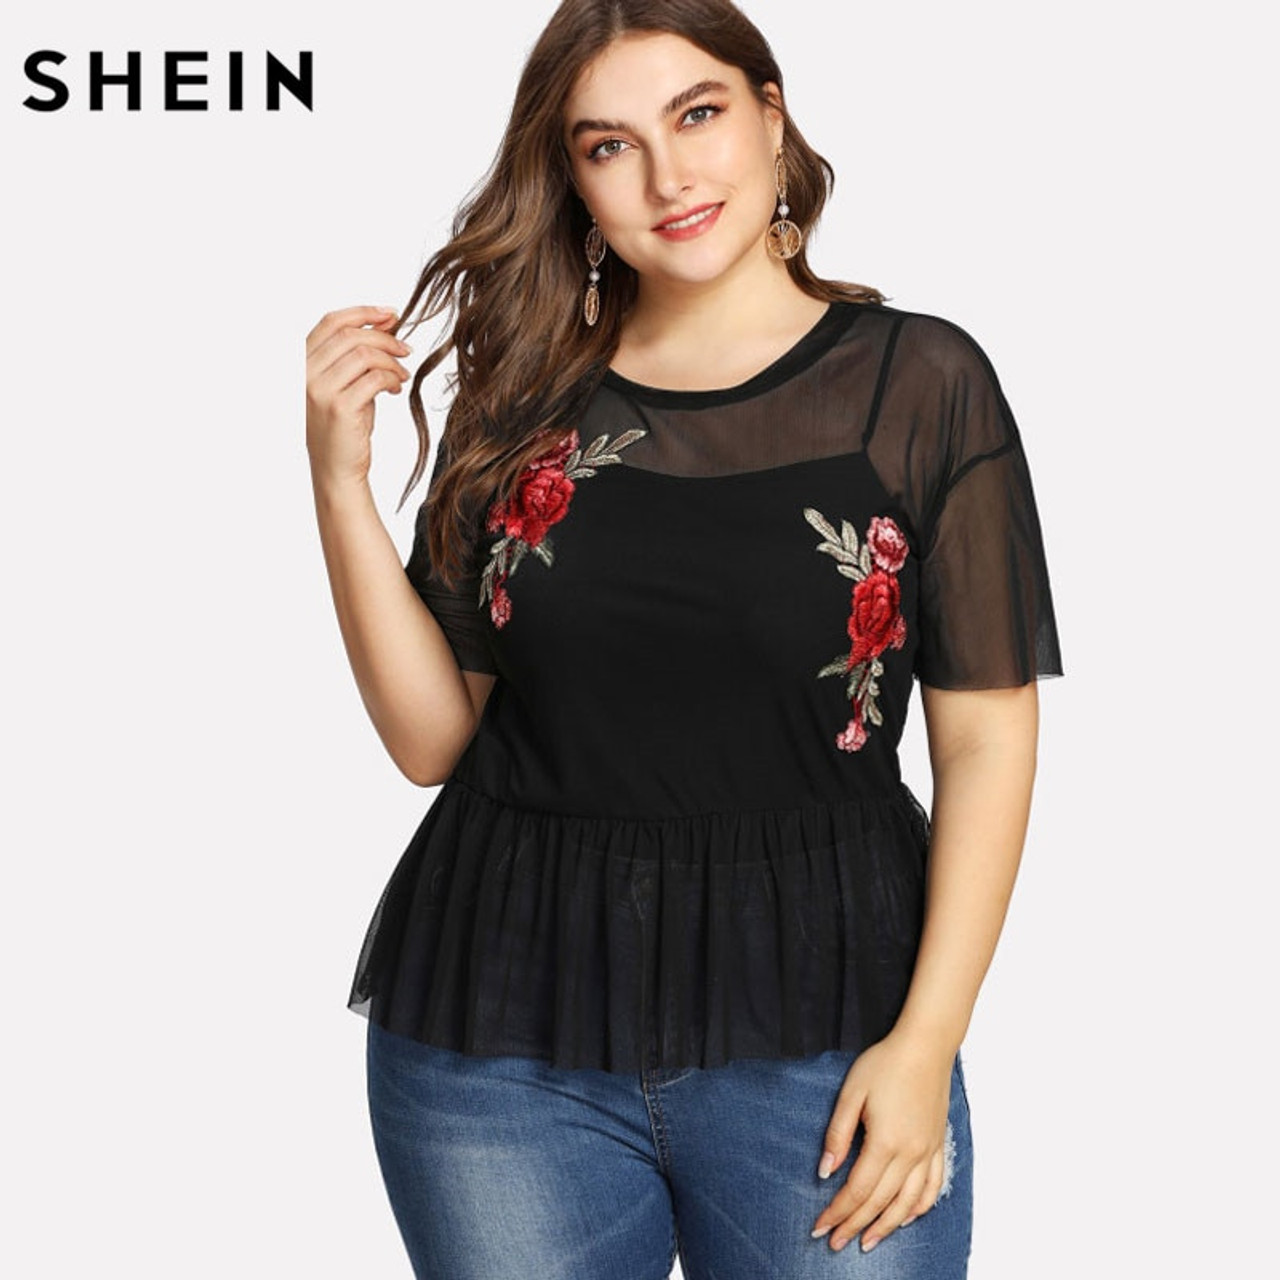 acb0a454be187d SHEIN Plus Size Summer Black Blouse Women Sexy Floral Round Neck Short Sleeve  Embroidered Rose Applique ...